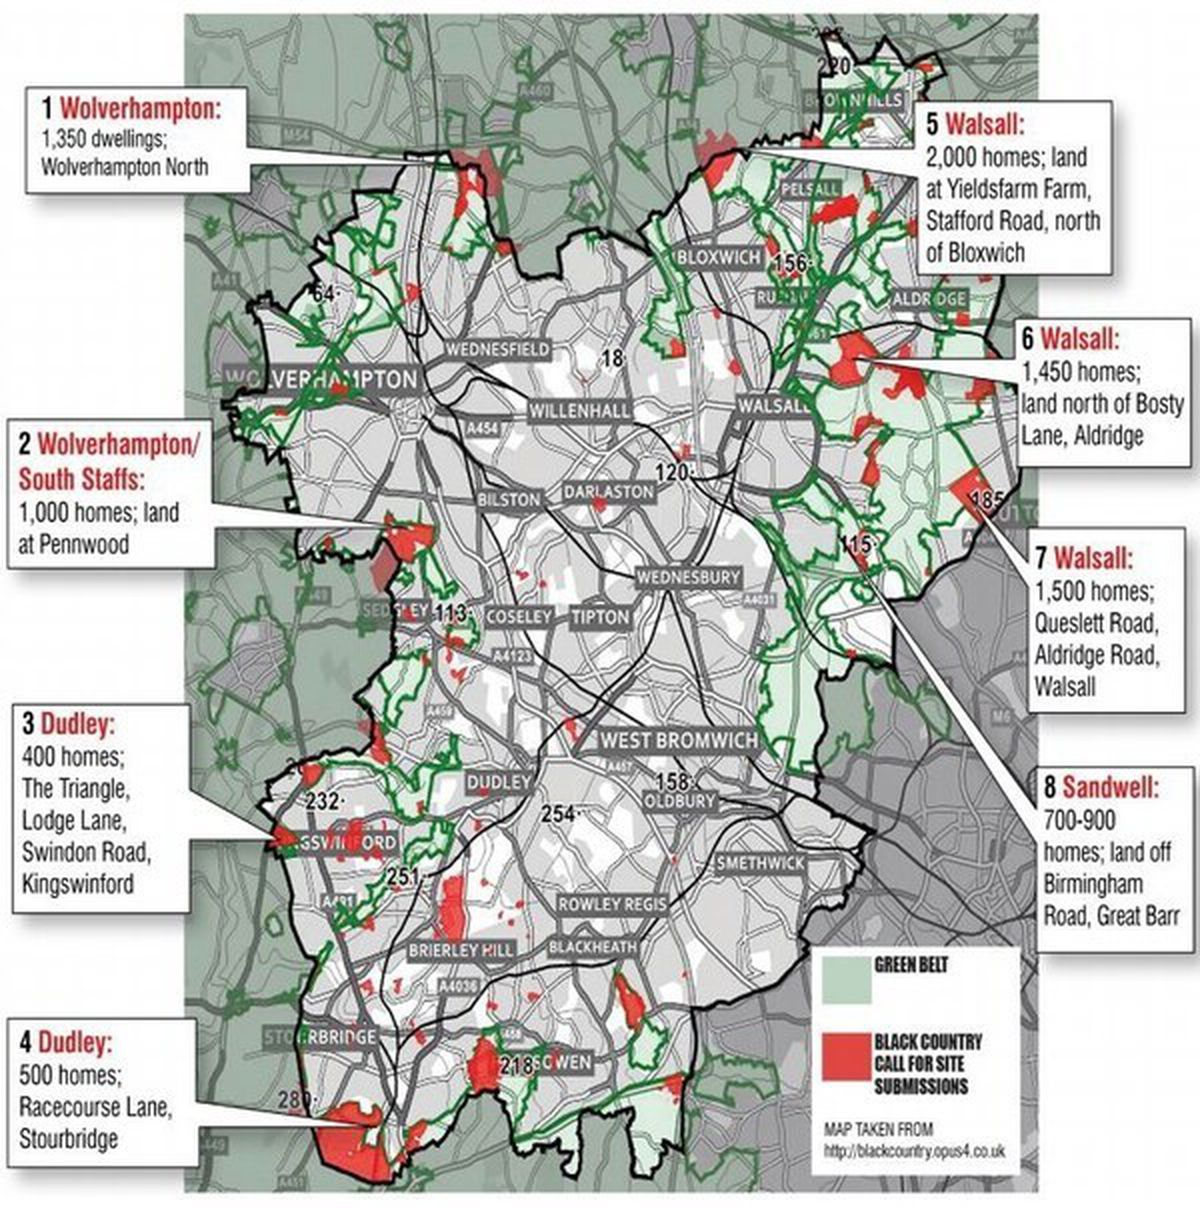 A map of the Black Country's green spaces and where developers are eyeing up land